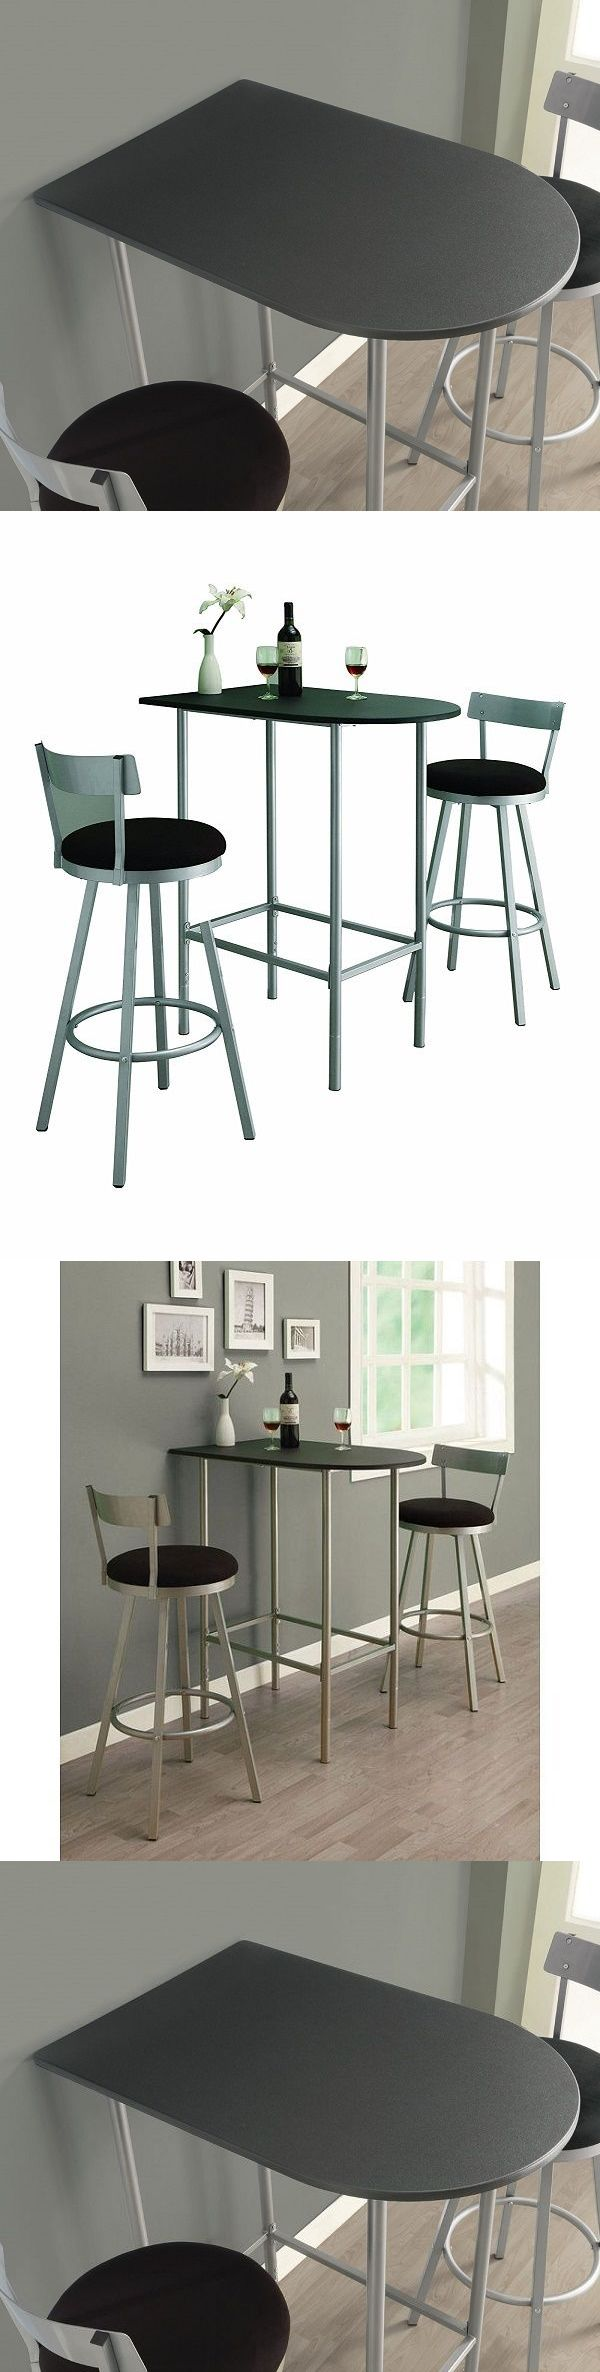 Dining Sets 107578: Small Counter Height Dining Table Only Space Saver Bar Apartment Kitchen Pub End -> BUY IT NOW ONLY: $98.99 on eBay!